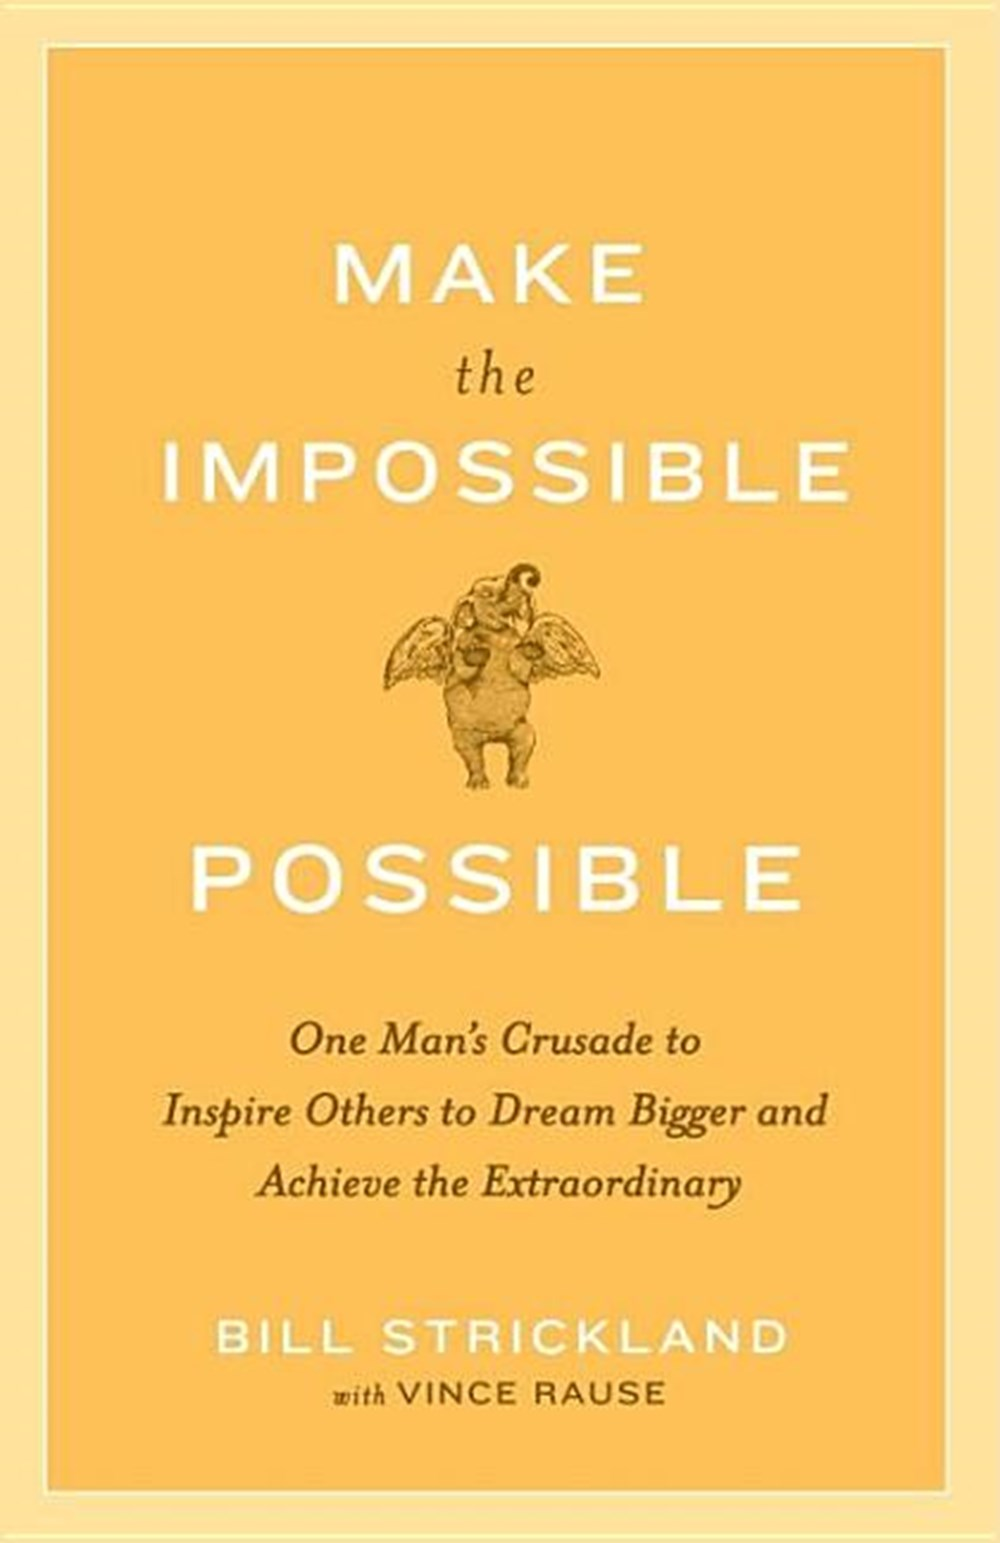 Make the Impossible Possible One Man's Crusade to Inspire Others to Dream Bigger and Achieve the Ext